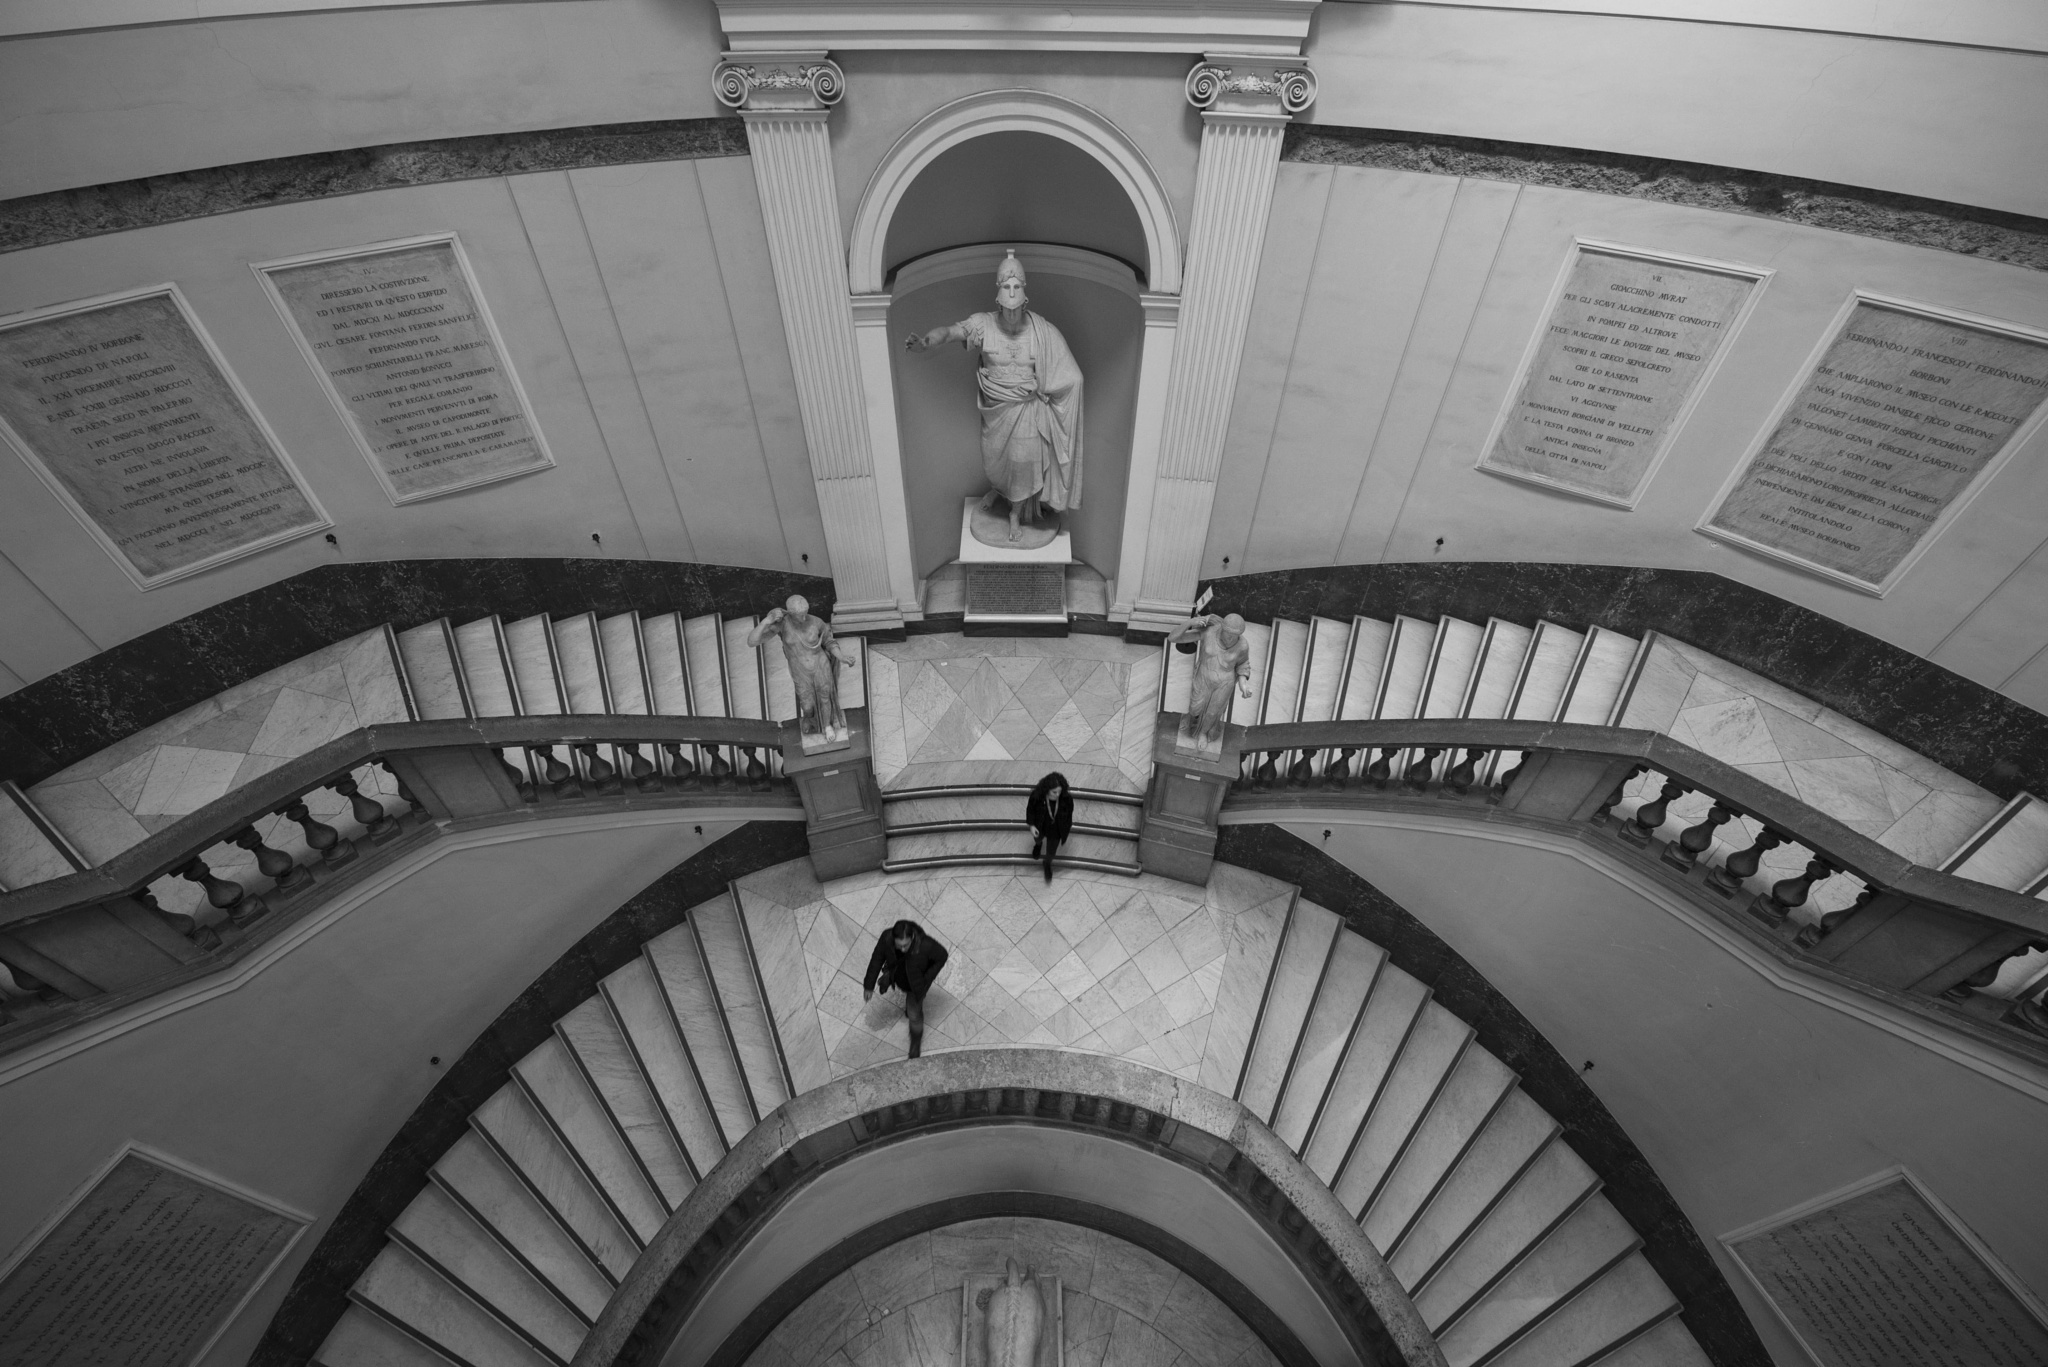 museum staircase  by alextrusty